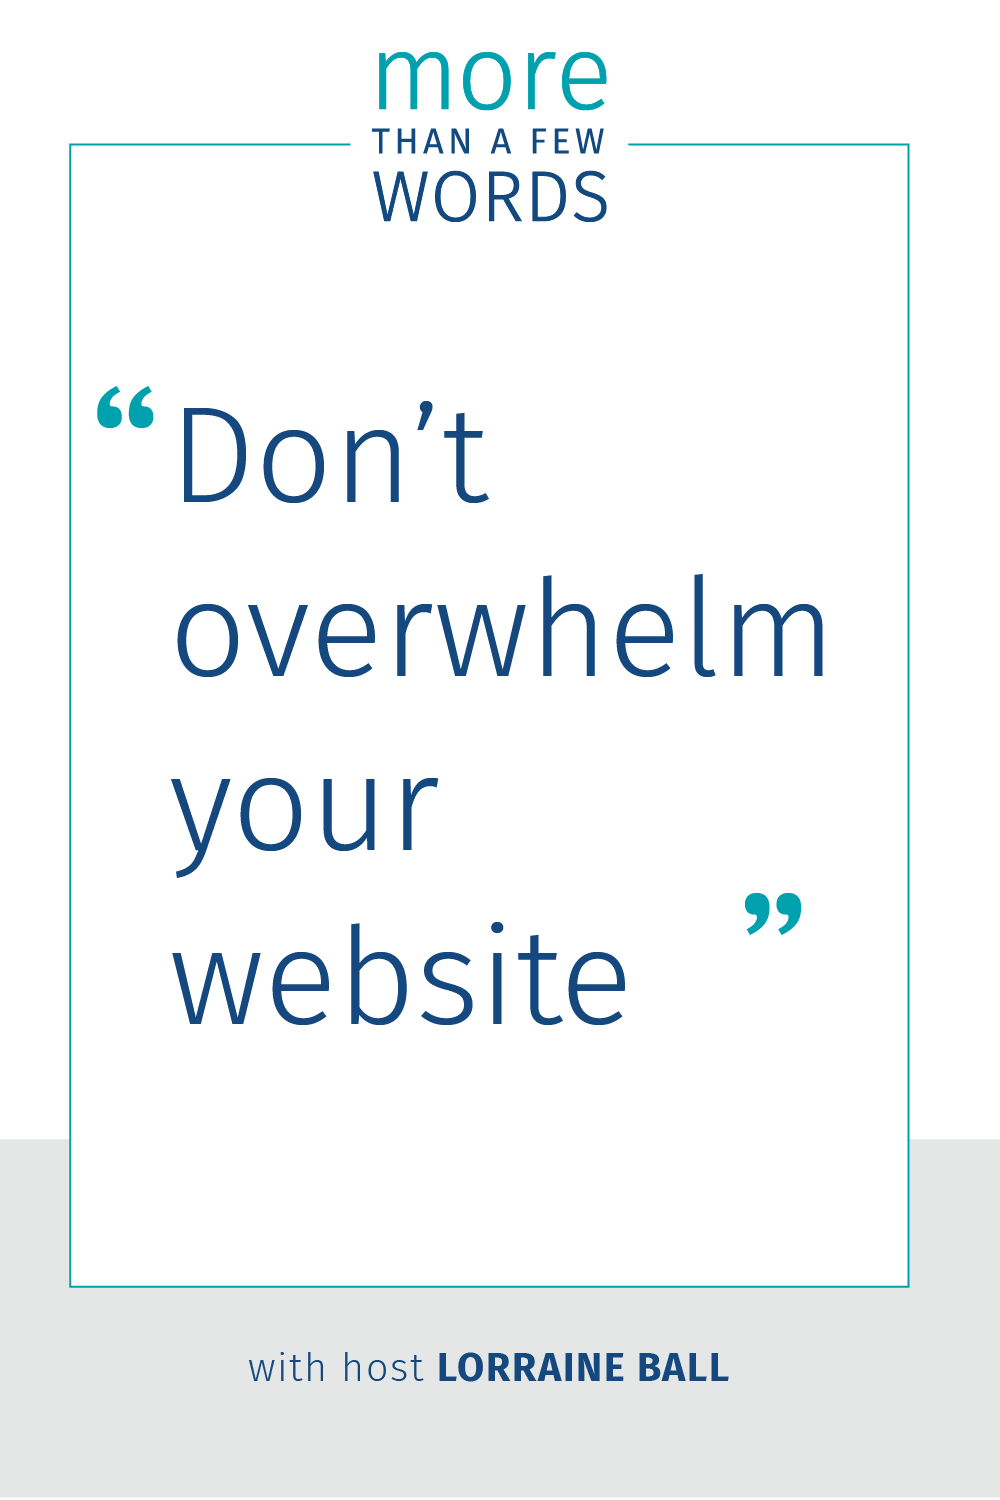 Don't overwhelm the website